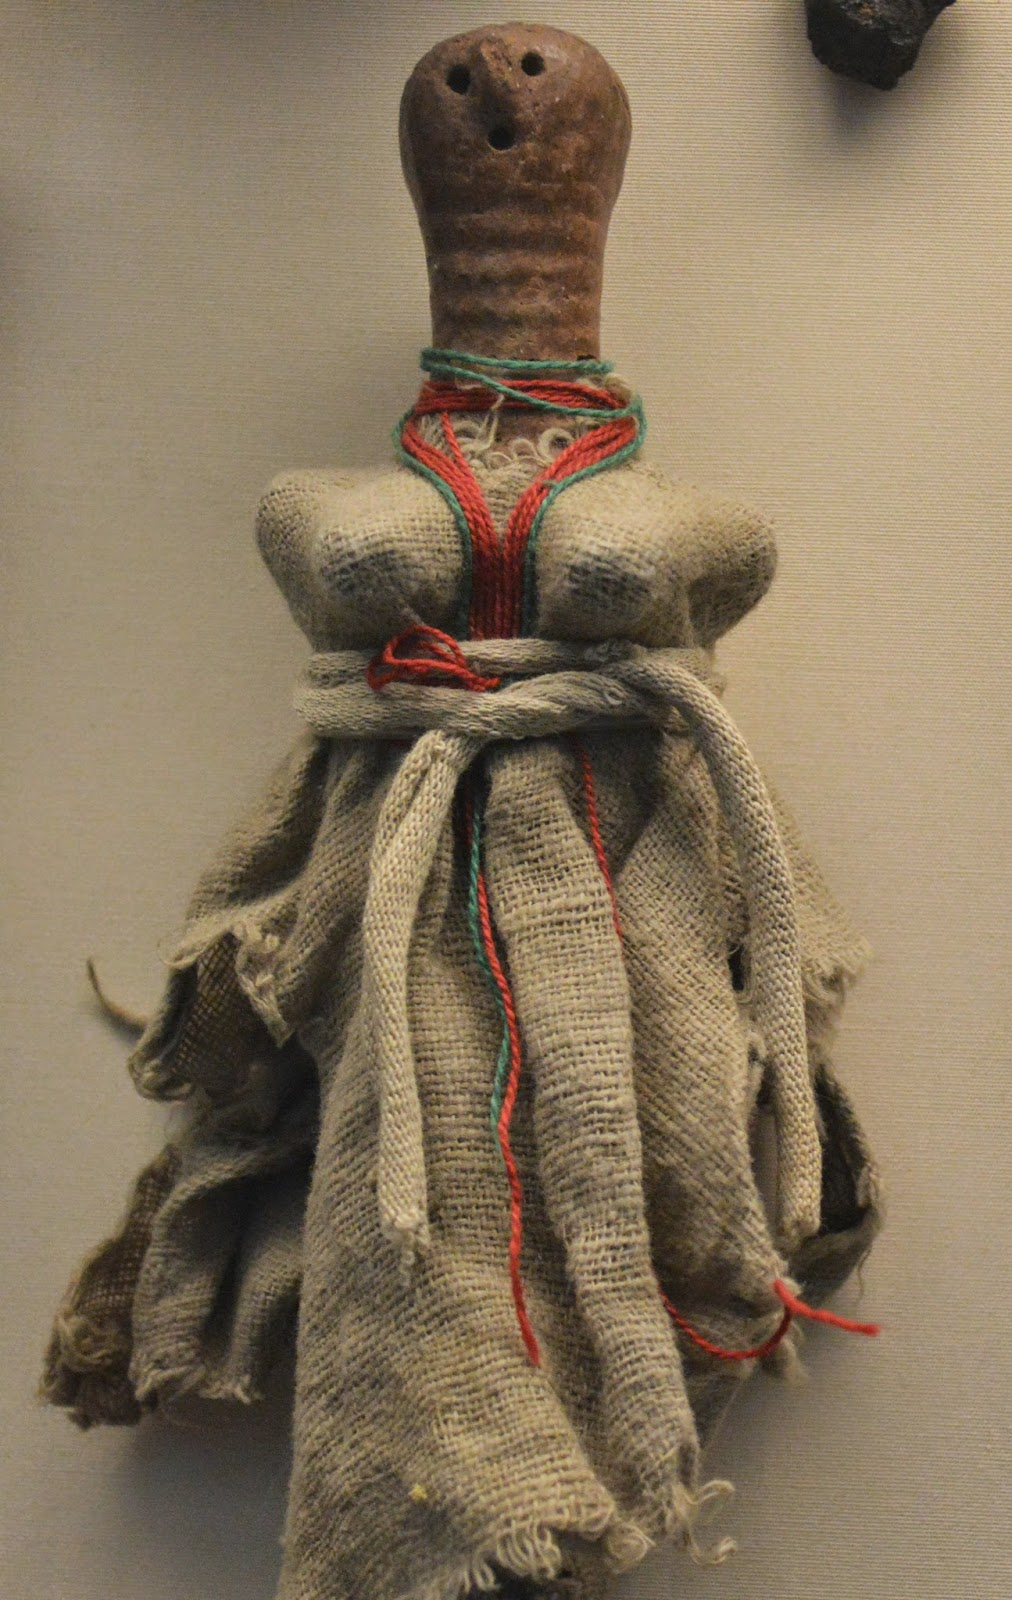 British Museum, African, clay doll, photograph